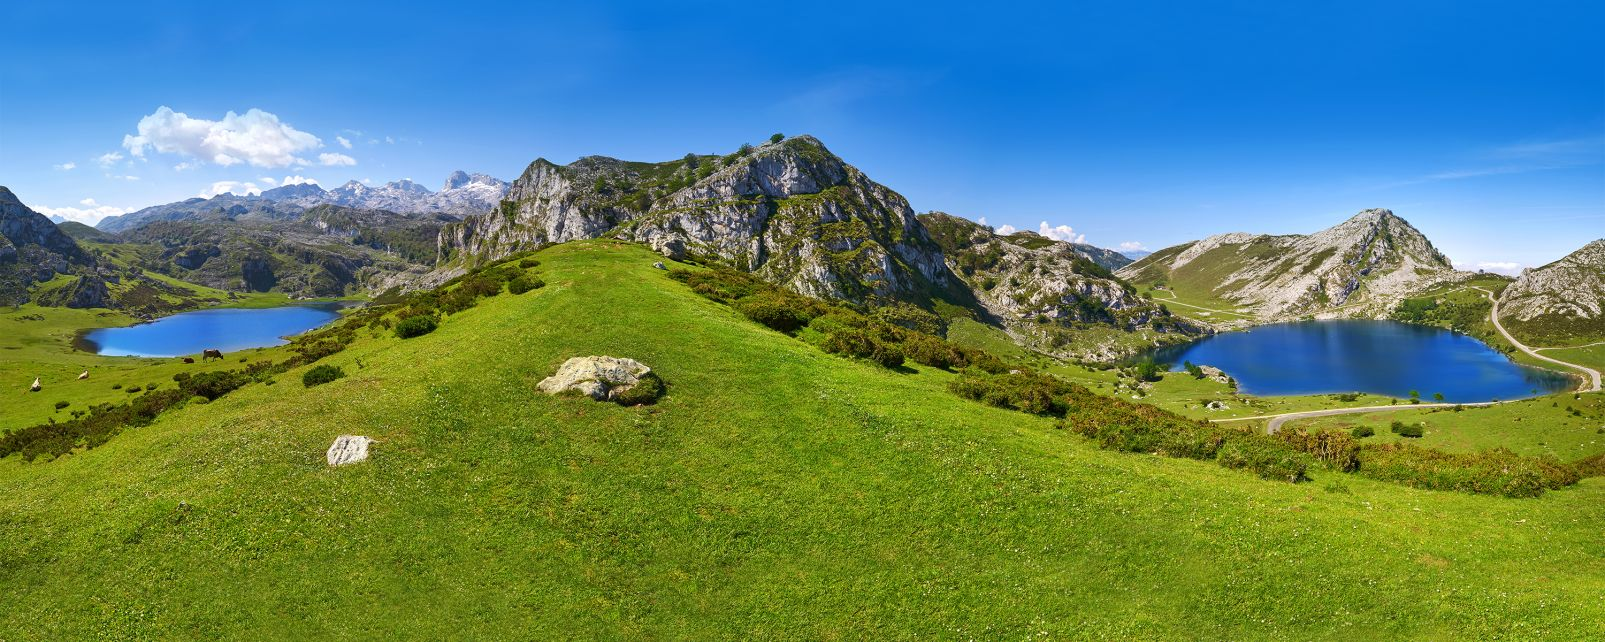 Covadonga, its lakes and its mountains, The lakes and mountains of Covadonga, Landscapes, Asturias